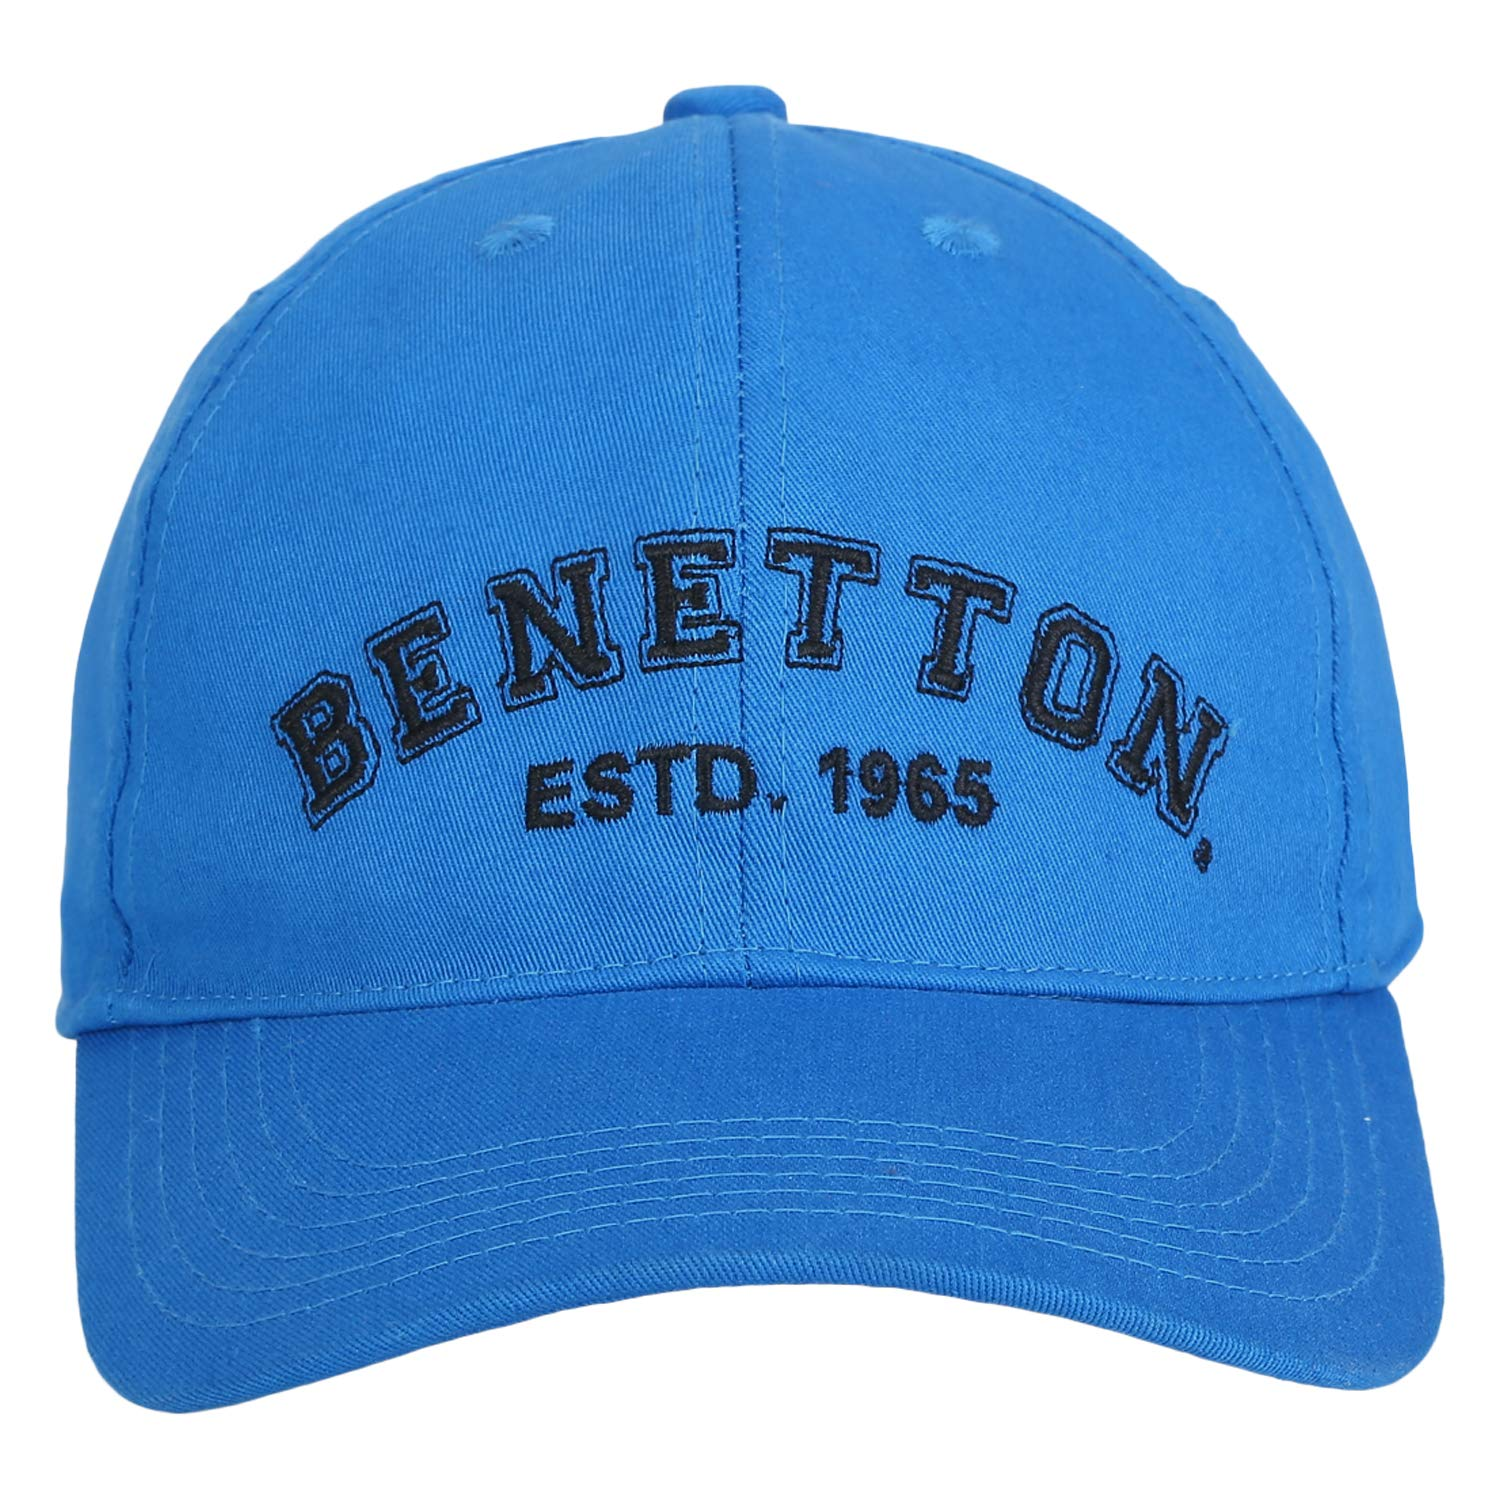 United Colors of Benetton caps up to 84% off @ Amazon